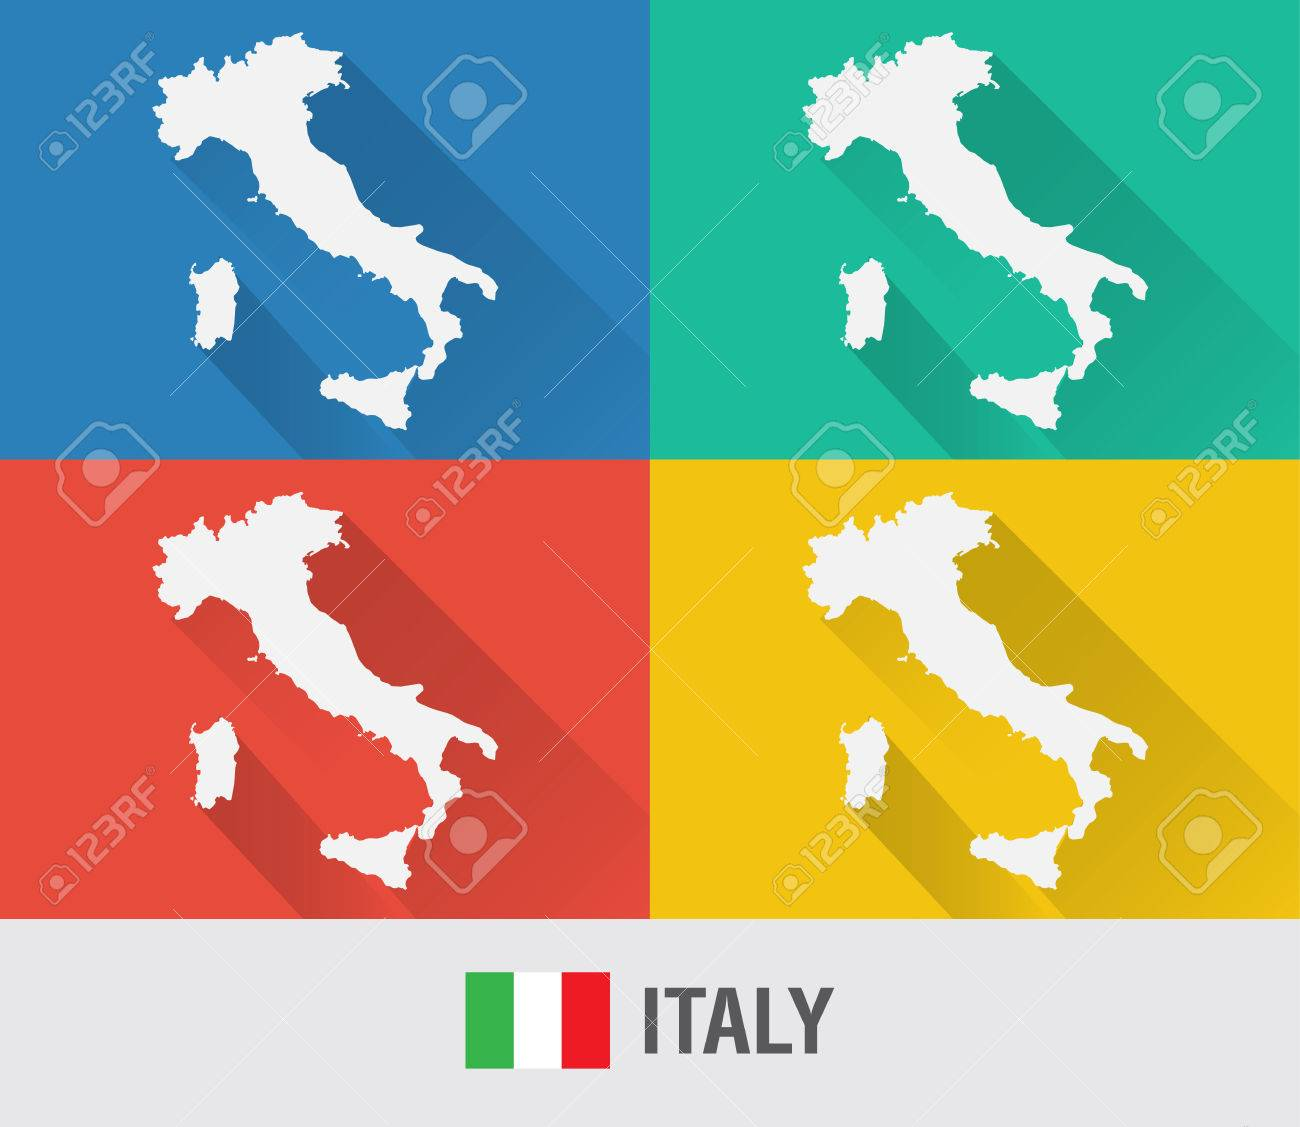 Italy World Map In Flat Style With Colors Modern Map Design - Italy world map